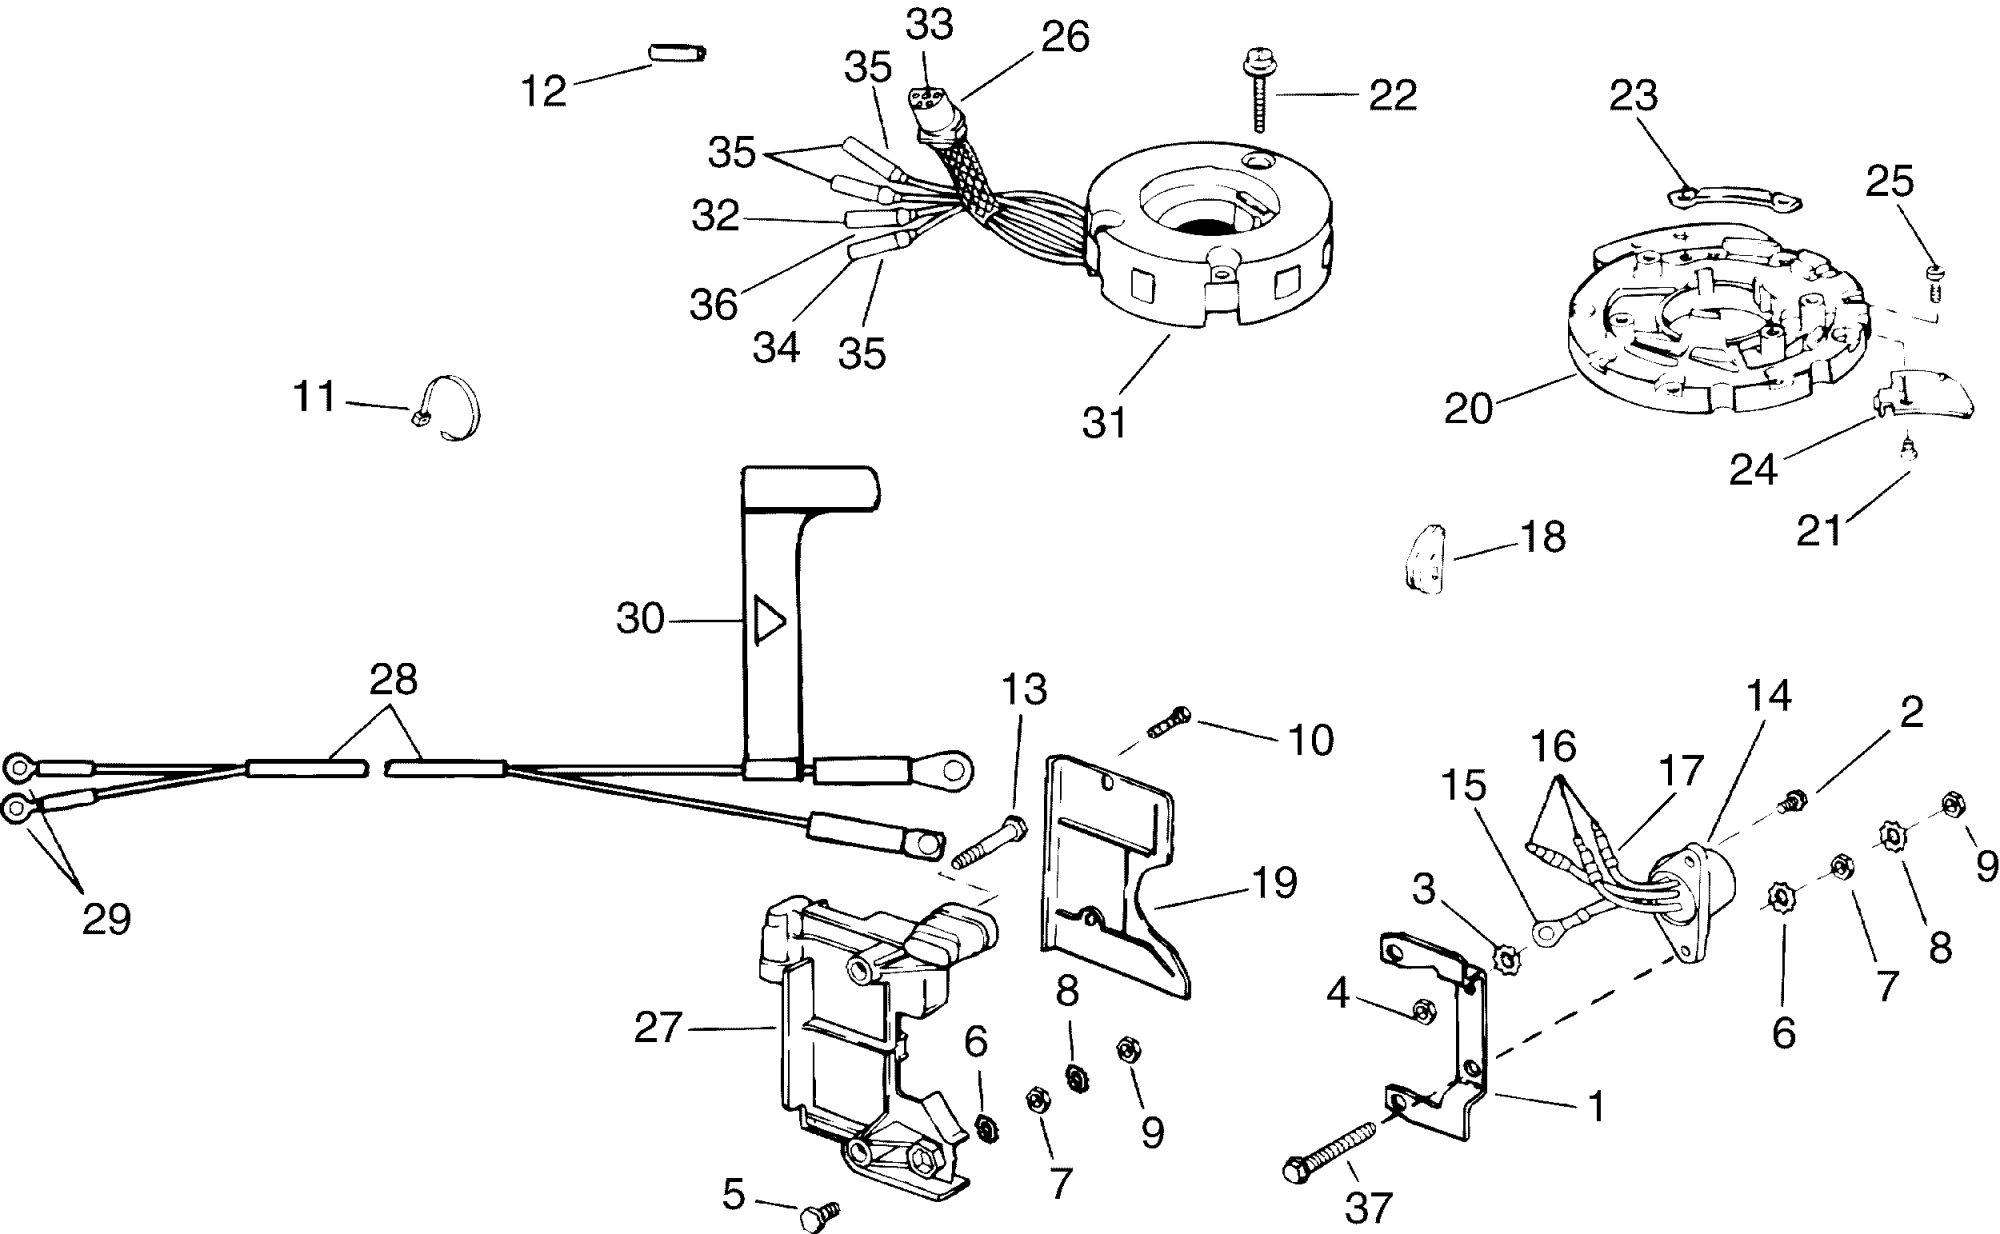 hight resolution of mercury outboard wiring diagrams mercury 850 wiring 1978 mercruiser 120 wiring diagram 1977 mercury 850 outboard wiring diagram